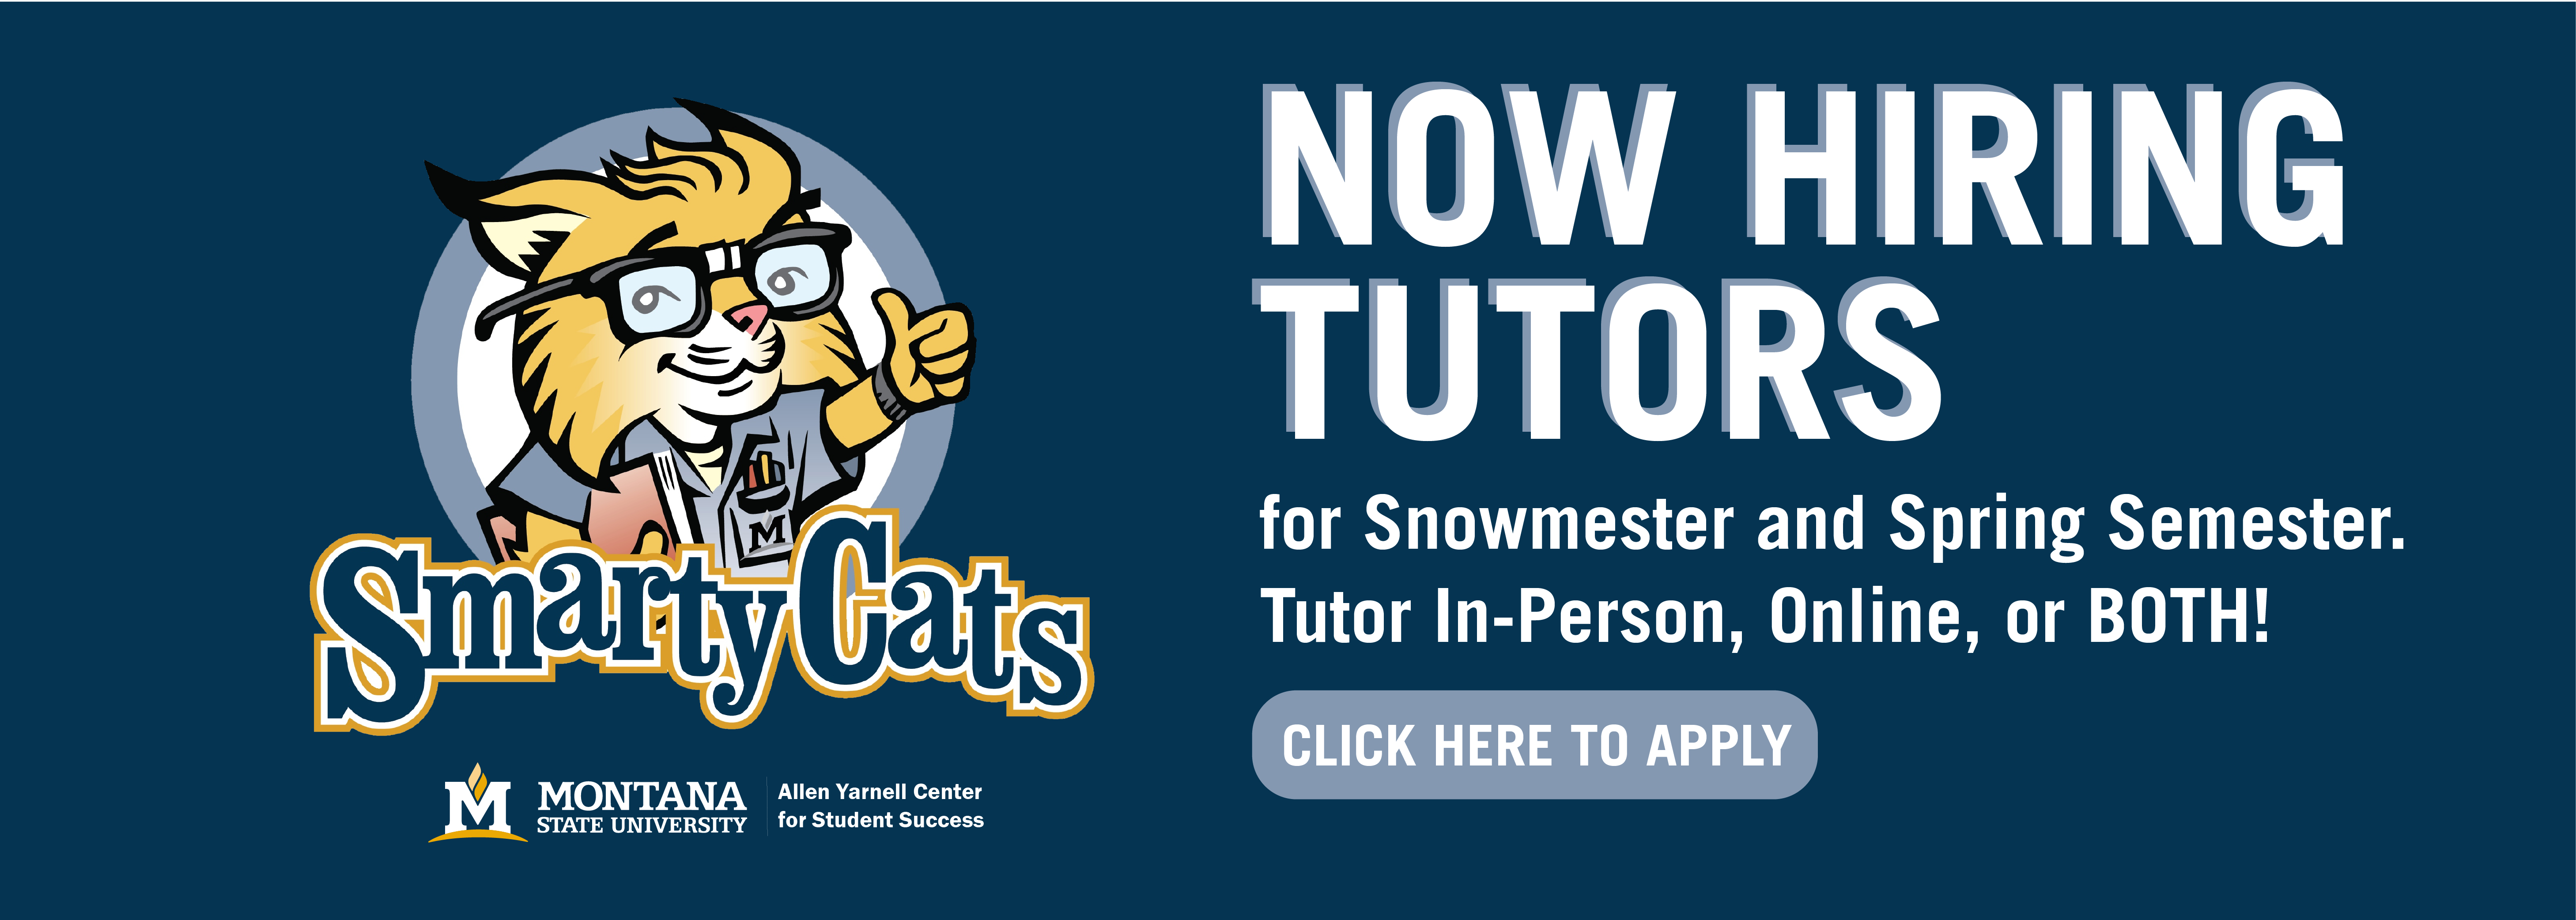 Now hiring tutors! Tutor in-person, online, or both! Click here to apply